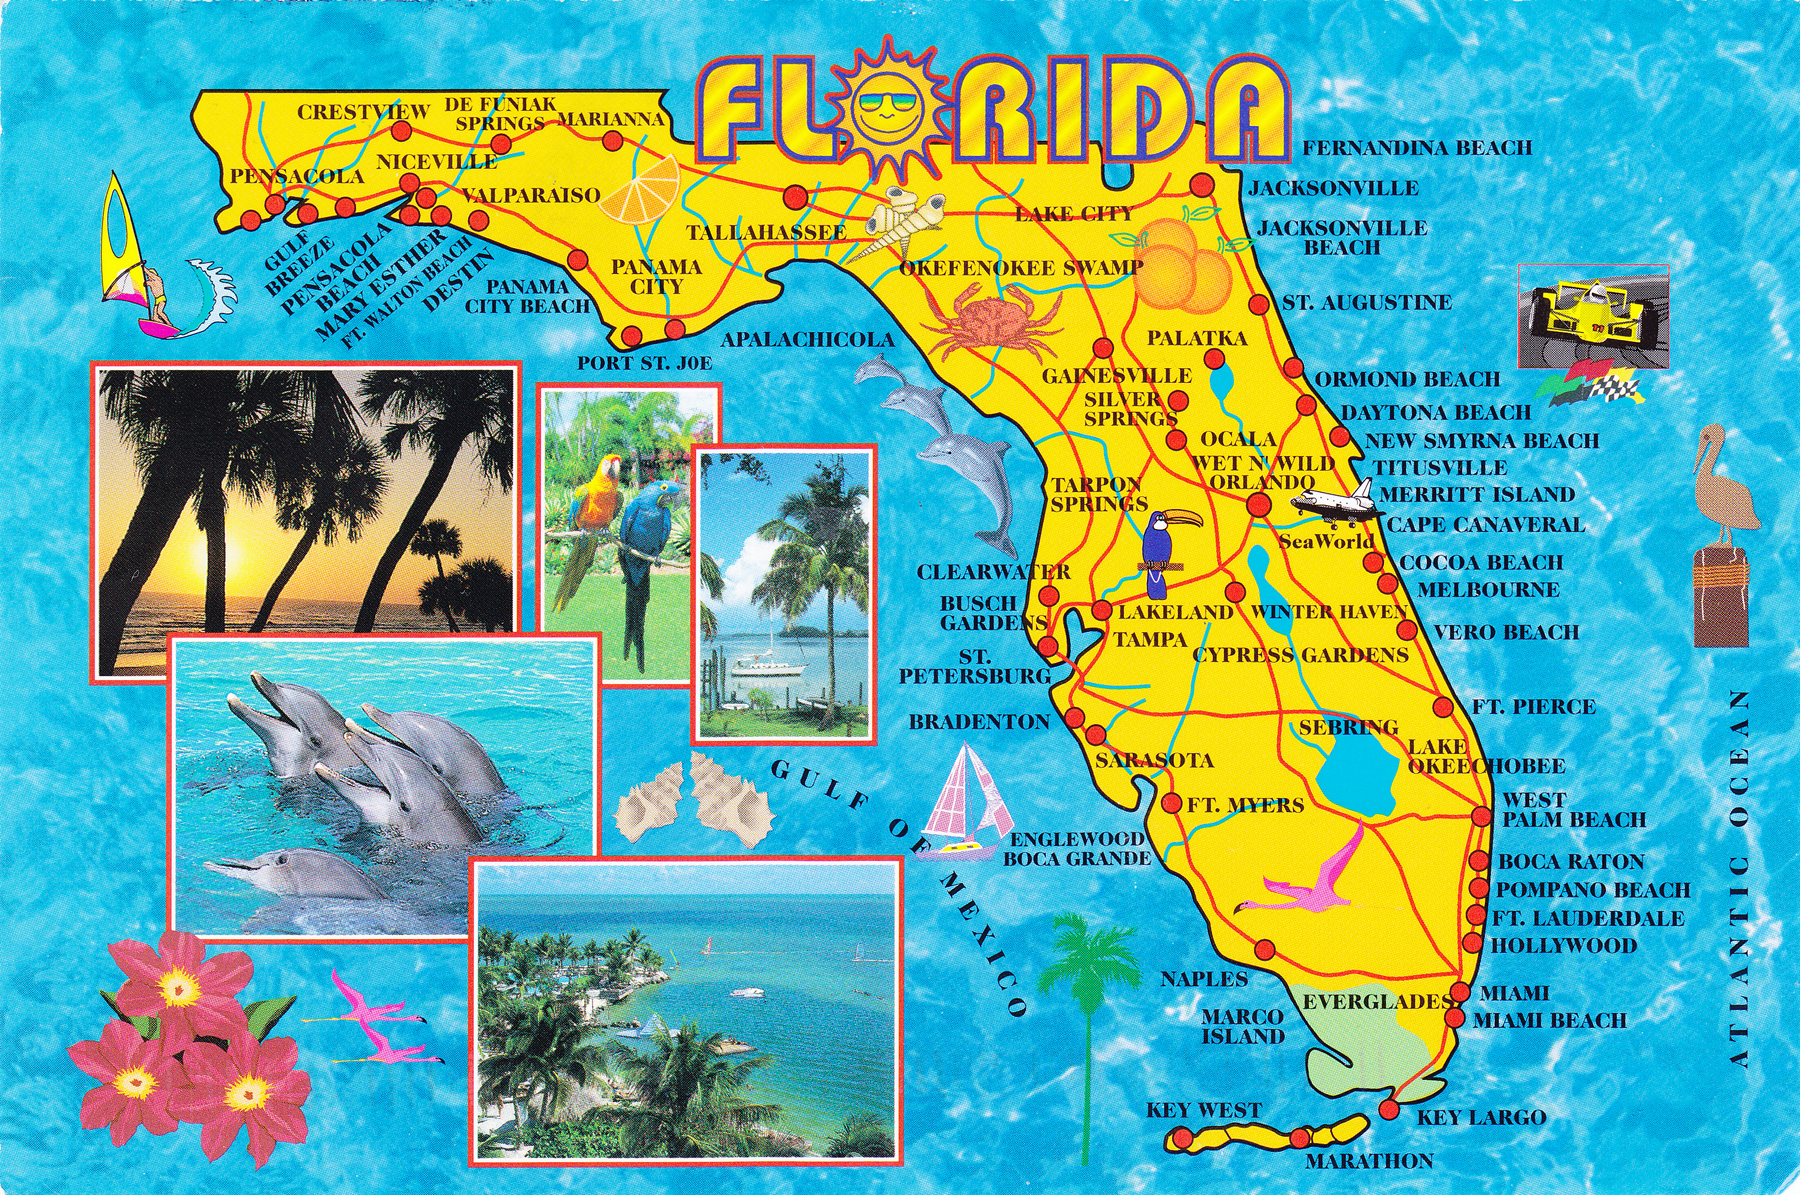 Florida beach front map